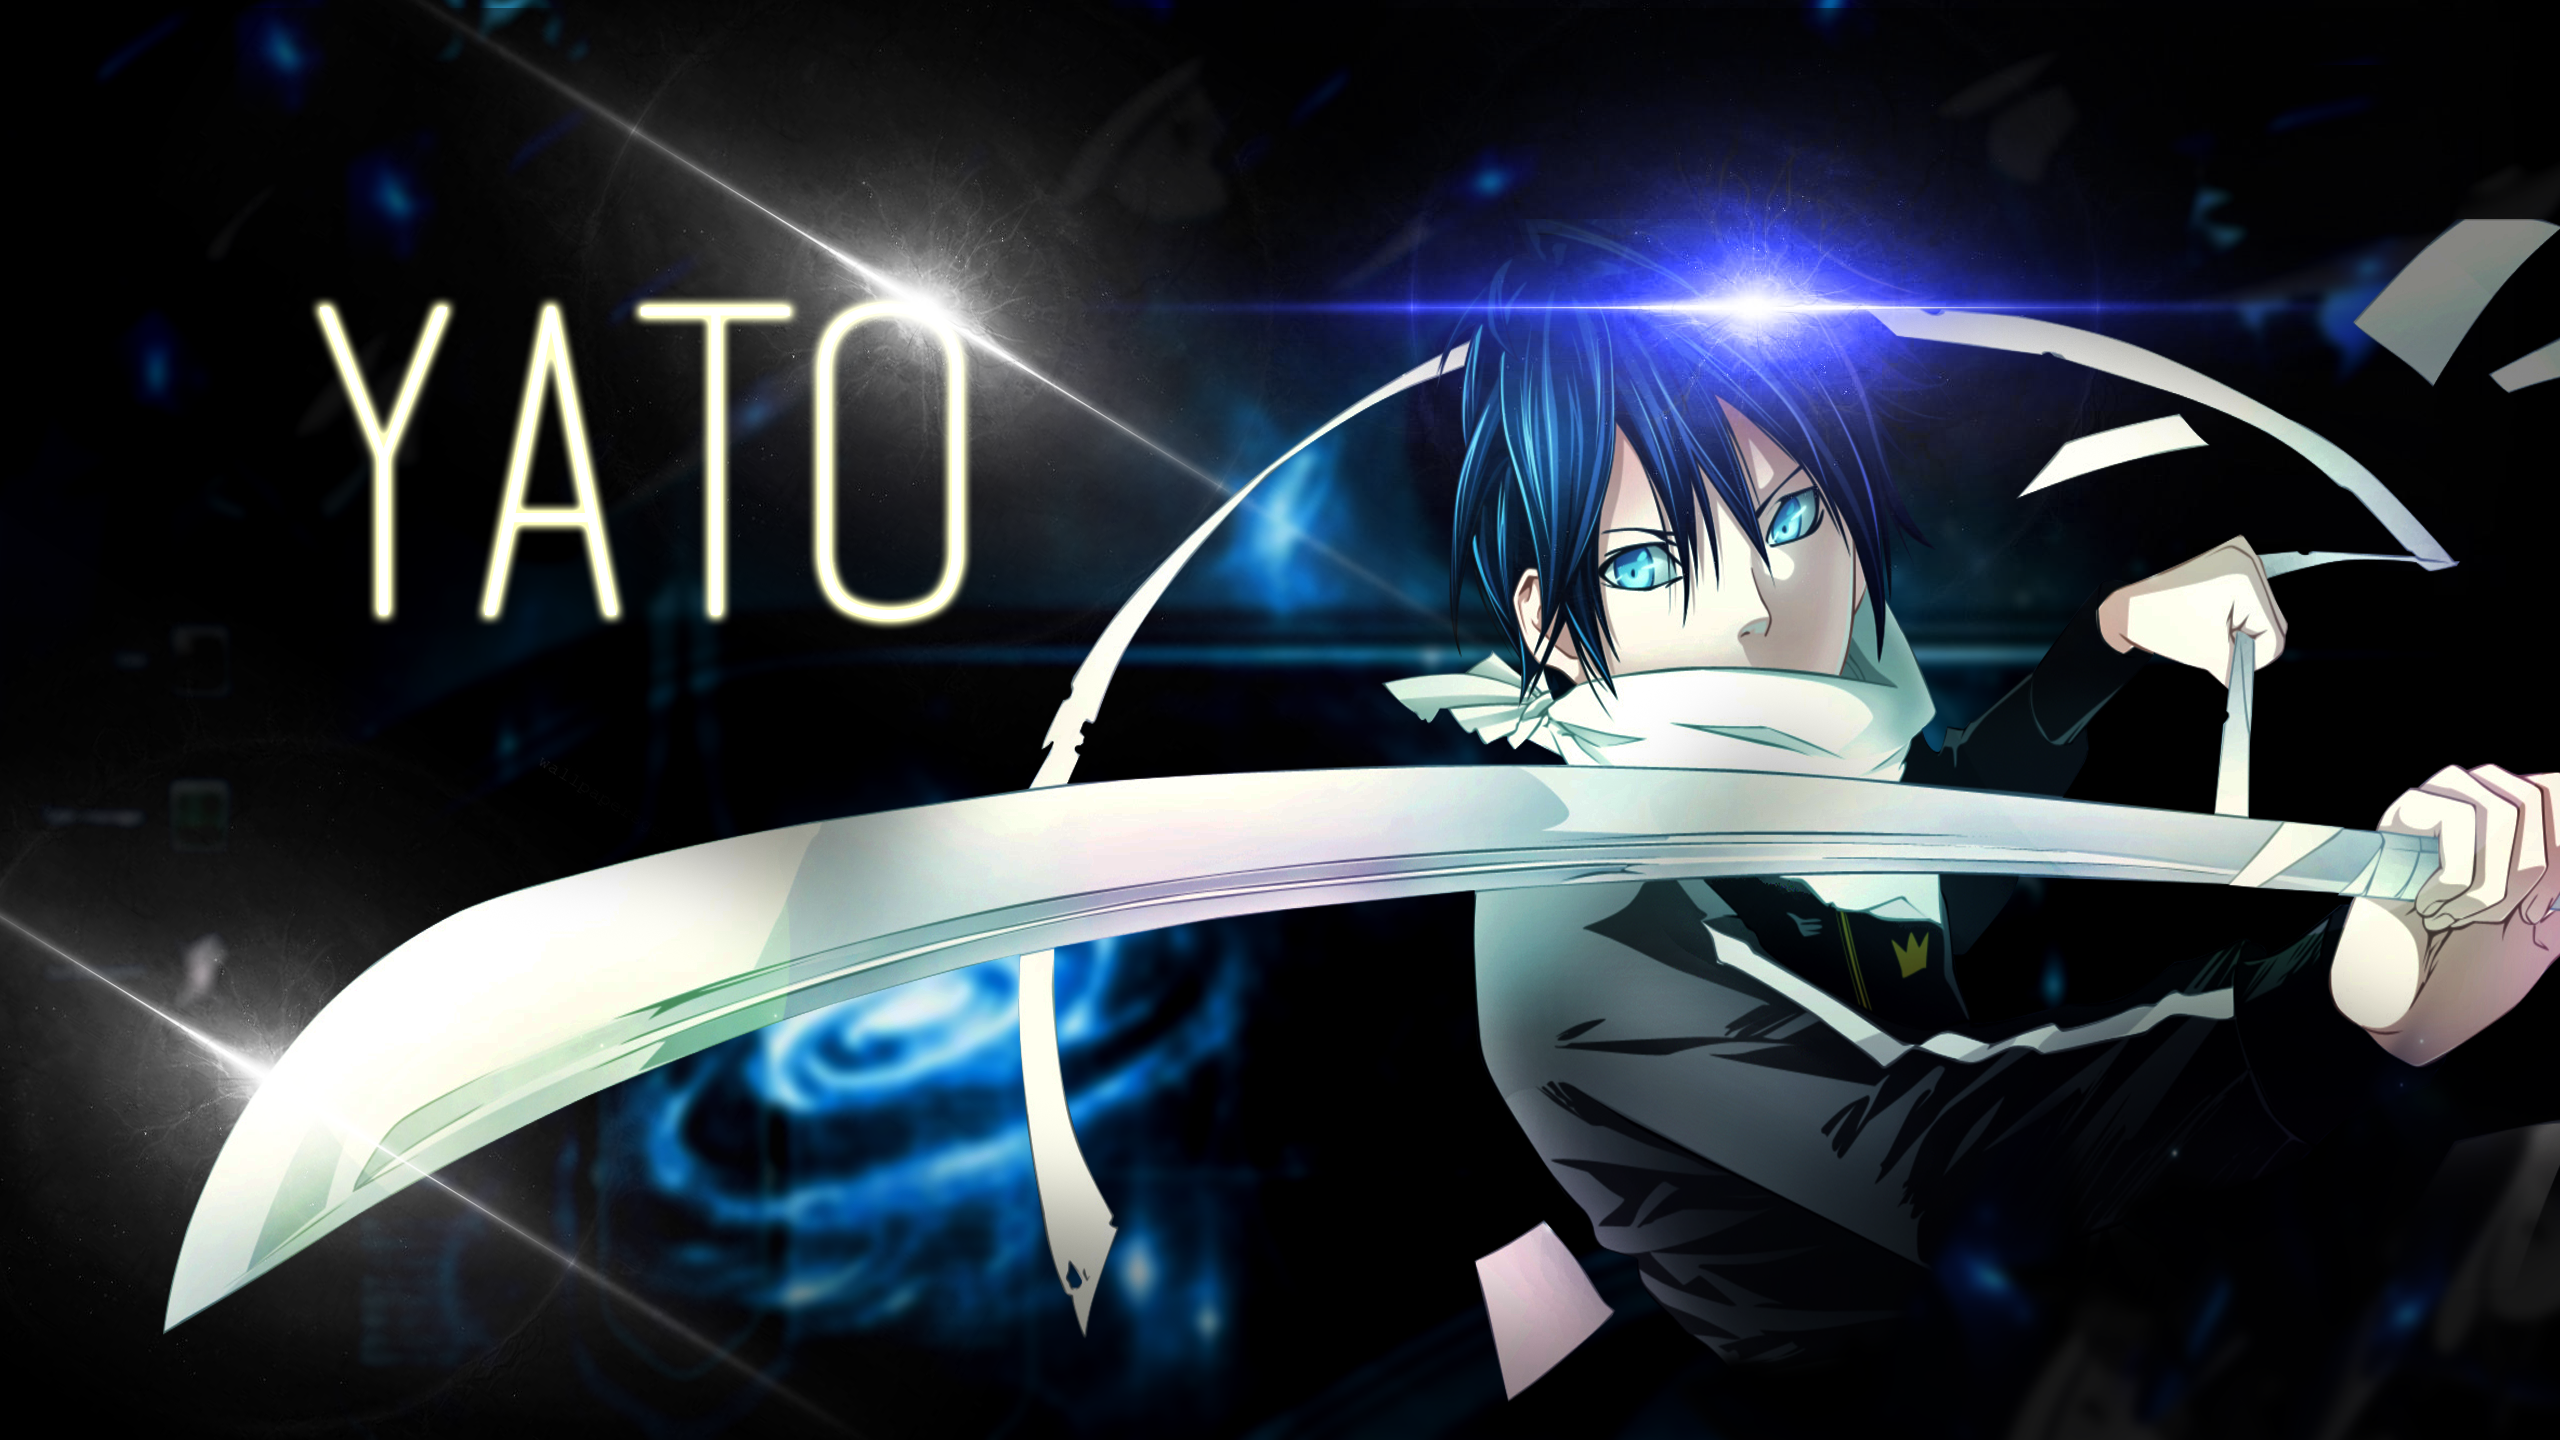 Yato wallpapers images photos pictures backgrounds - Wallpaper photos ...